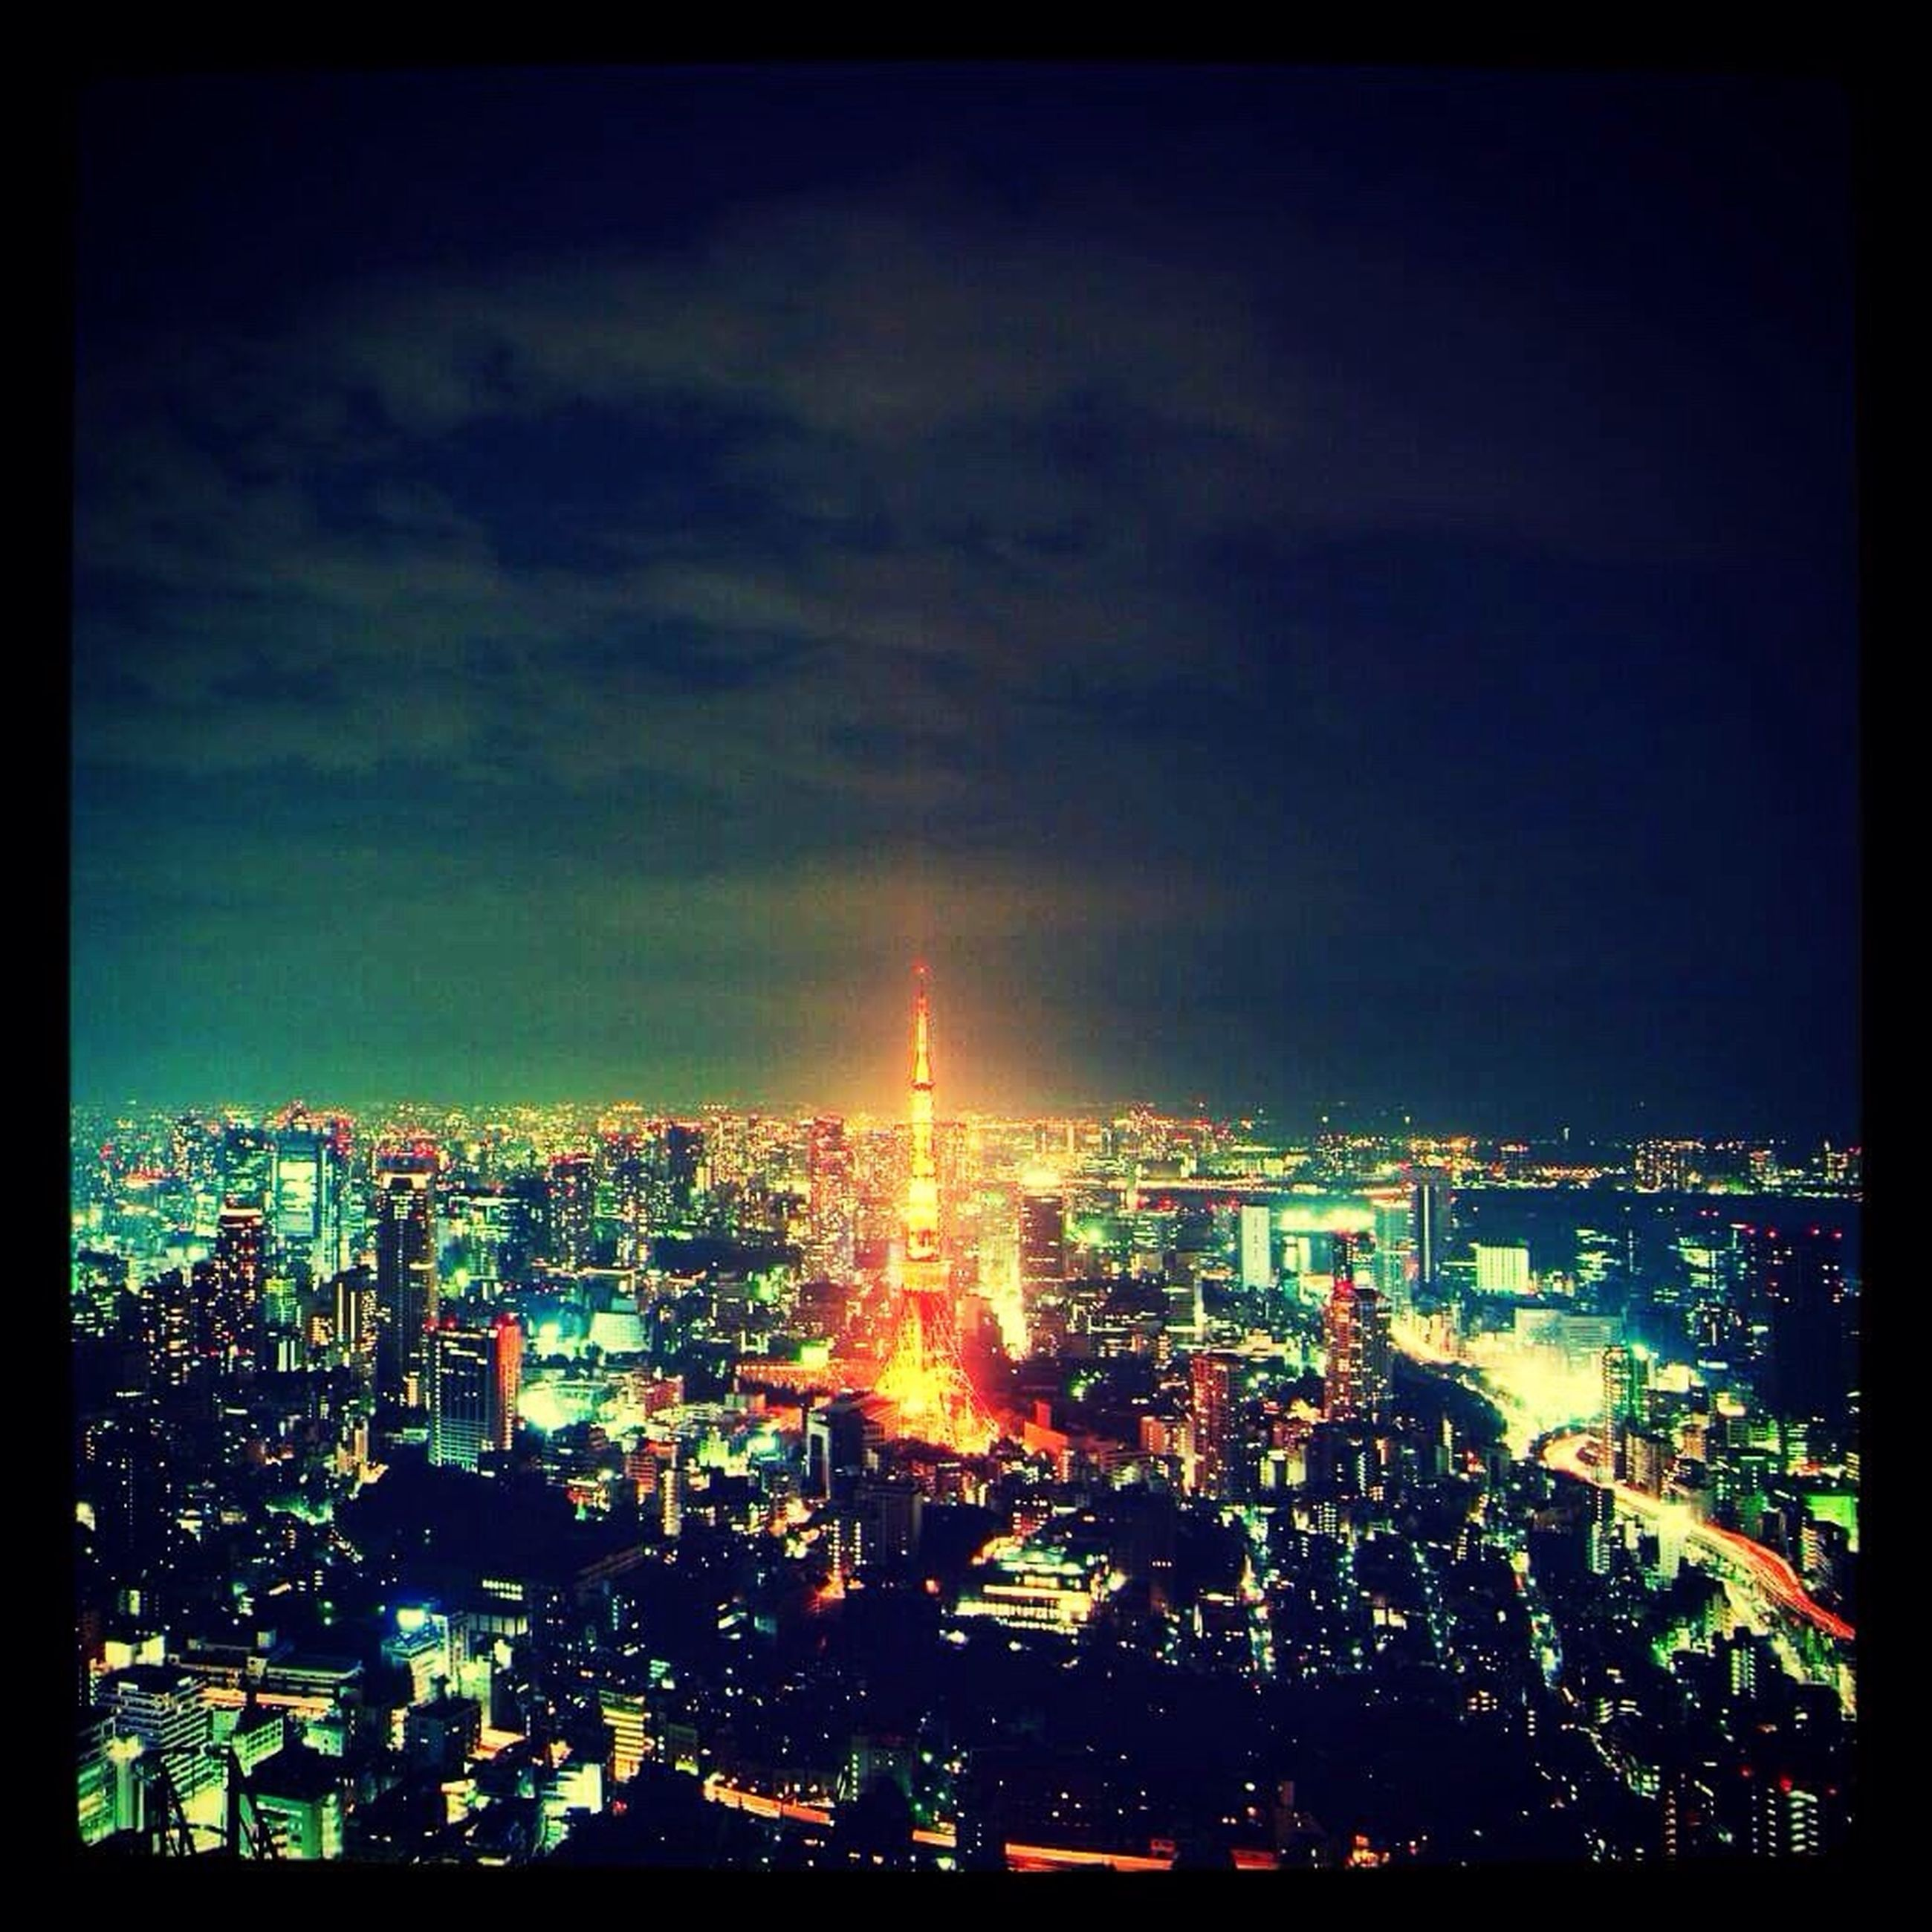 illuminated, cityscape, city, building exterior, night, architecture, built structure, crowded, sky, high angle view, residential district, residential building, skyscraper, city life, cloud - sky, residential structure, dusk, no people, outdoors, modern